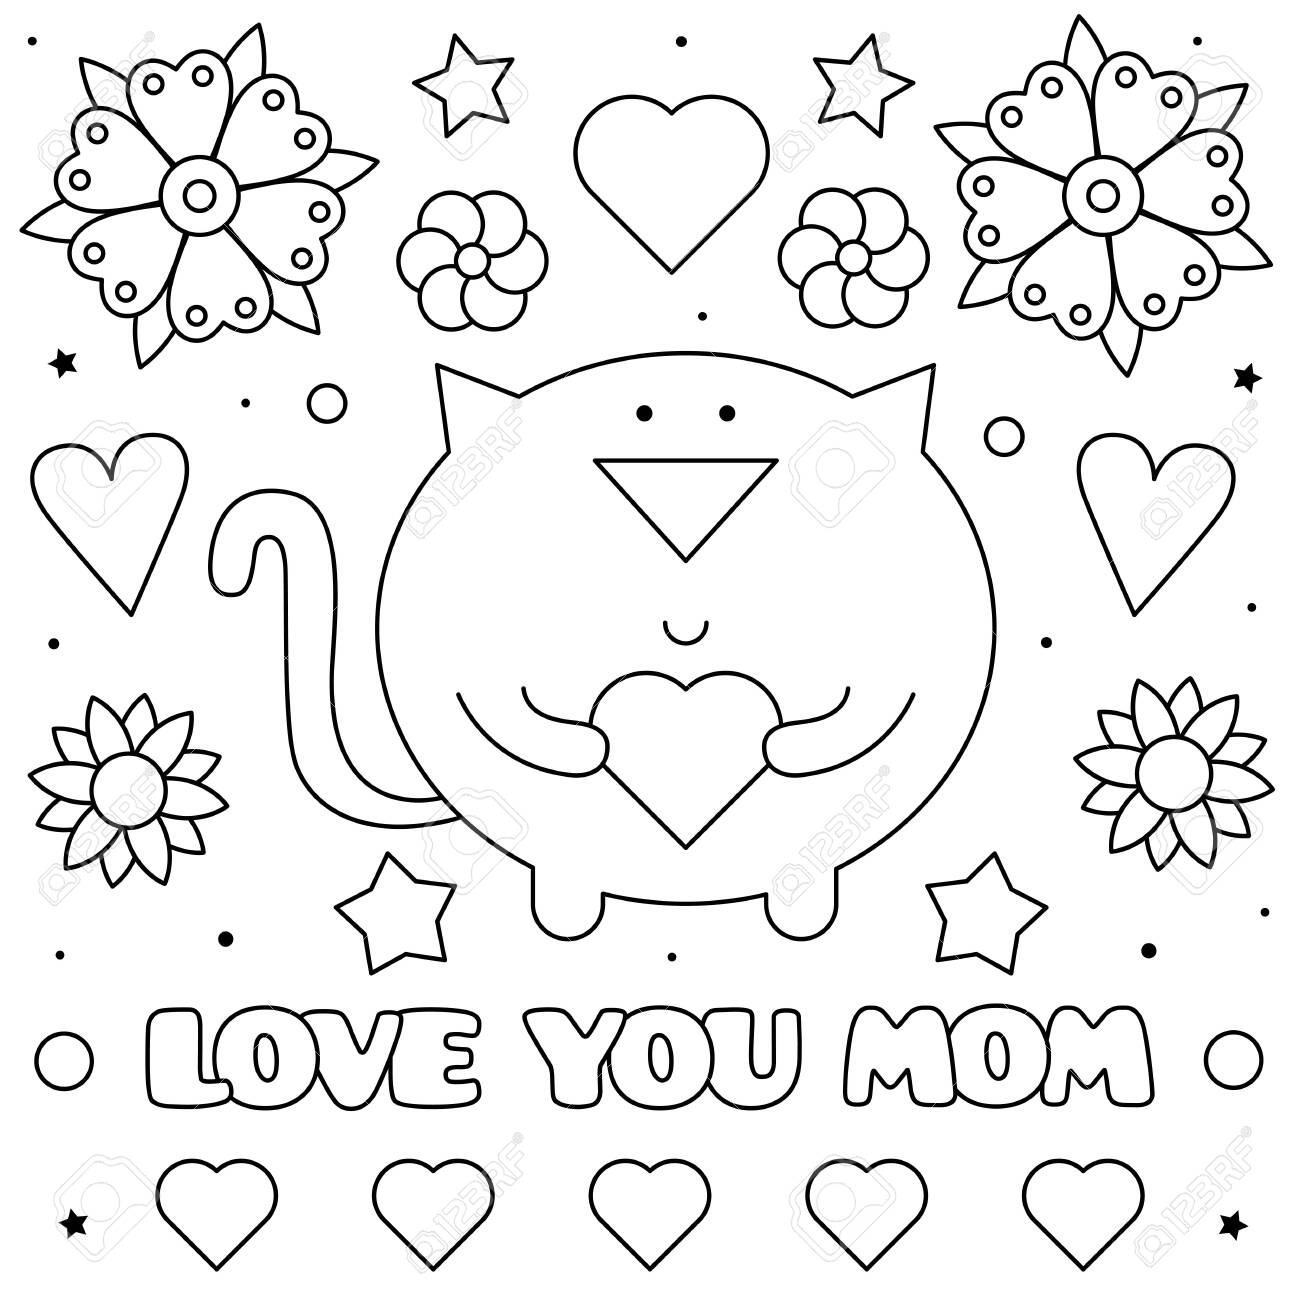 Love You Mom Coloring Page Black And White Vector Illustration Royalty Free Cliparts Vectors And Stock Illustration Image 124380748